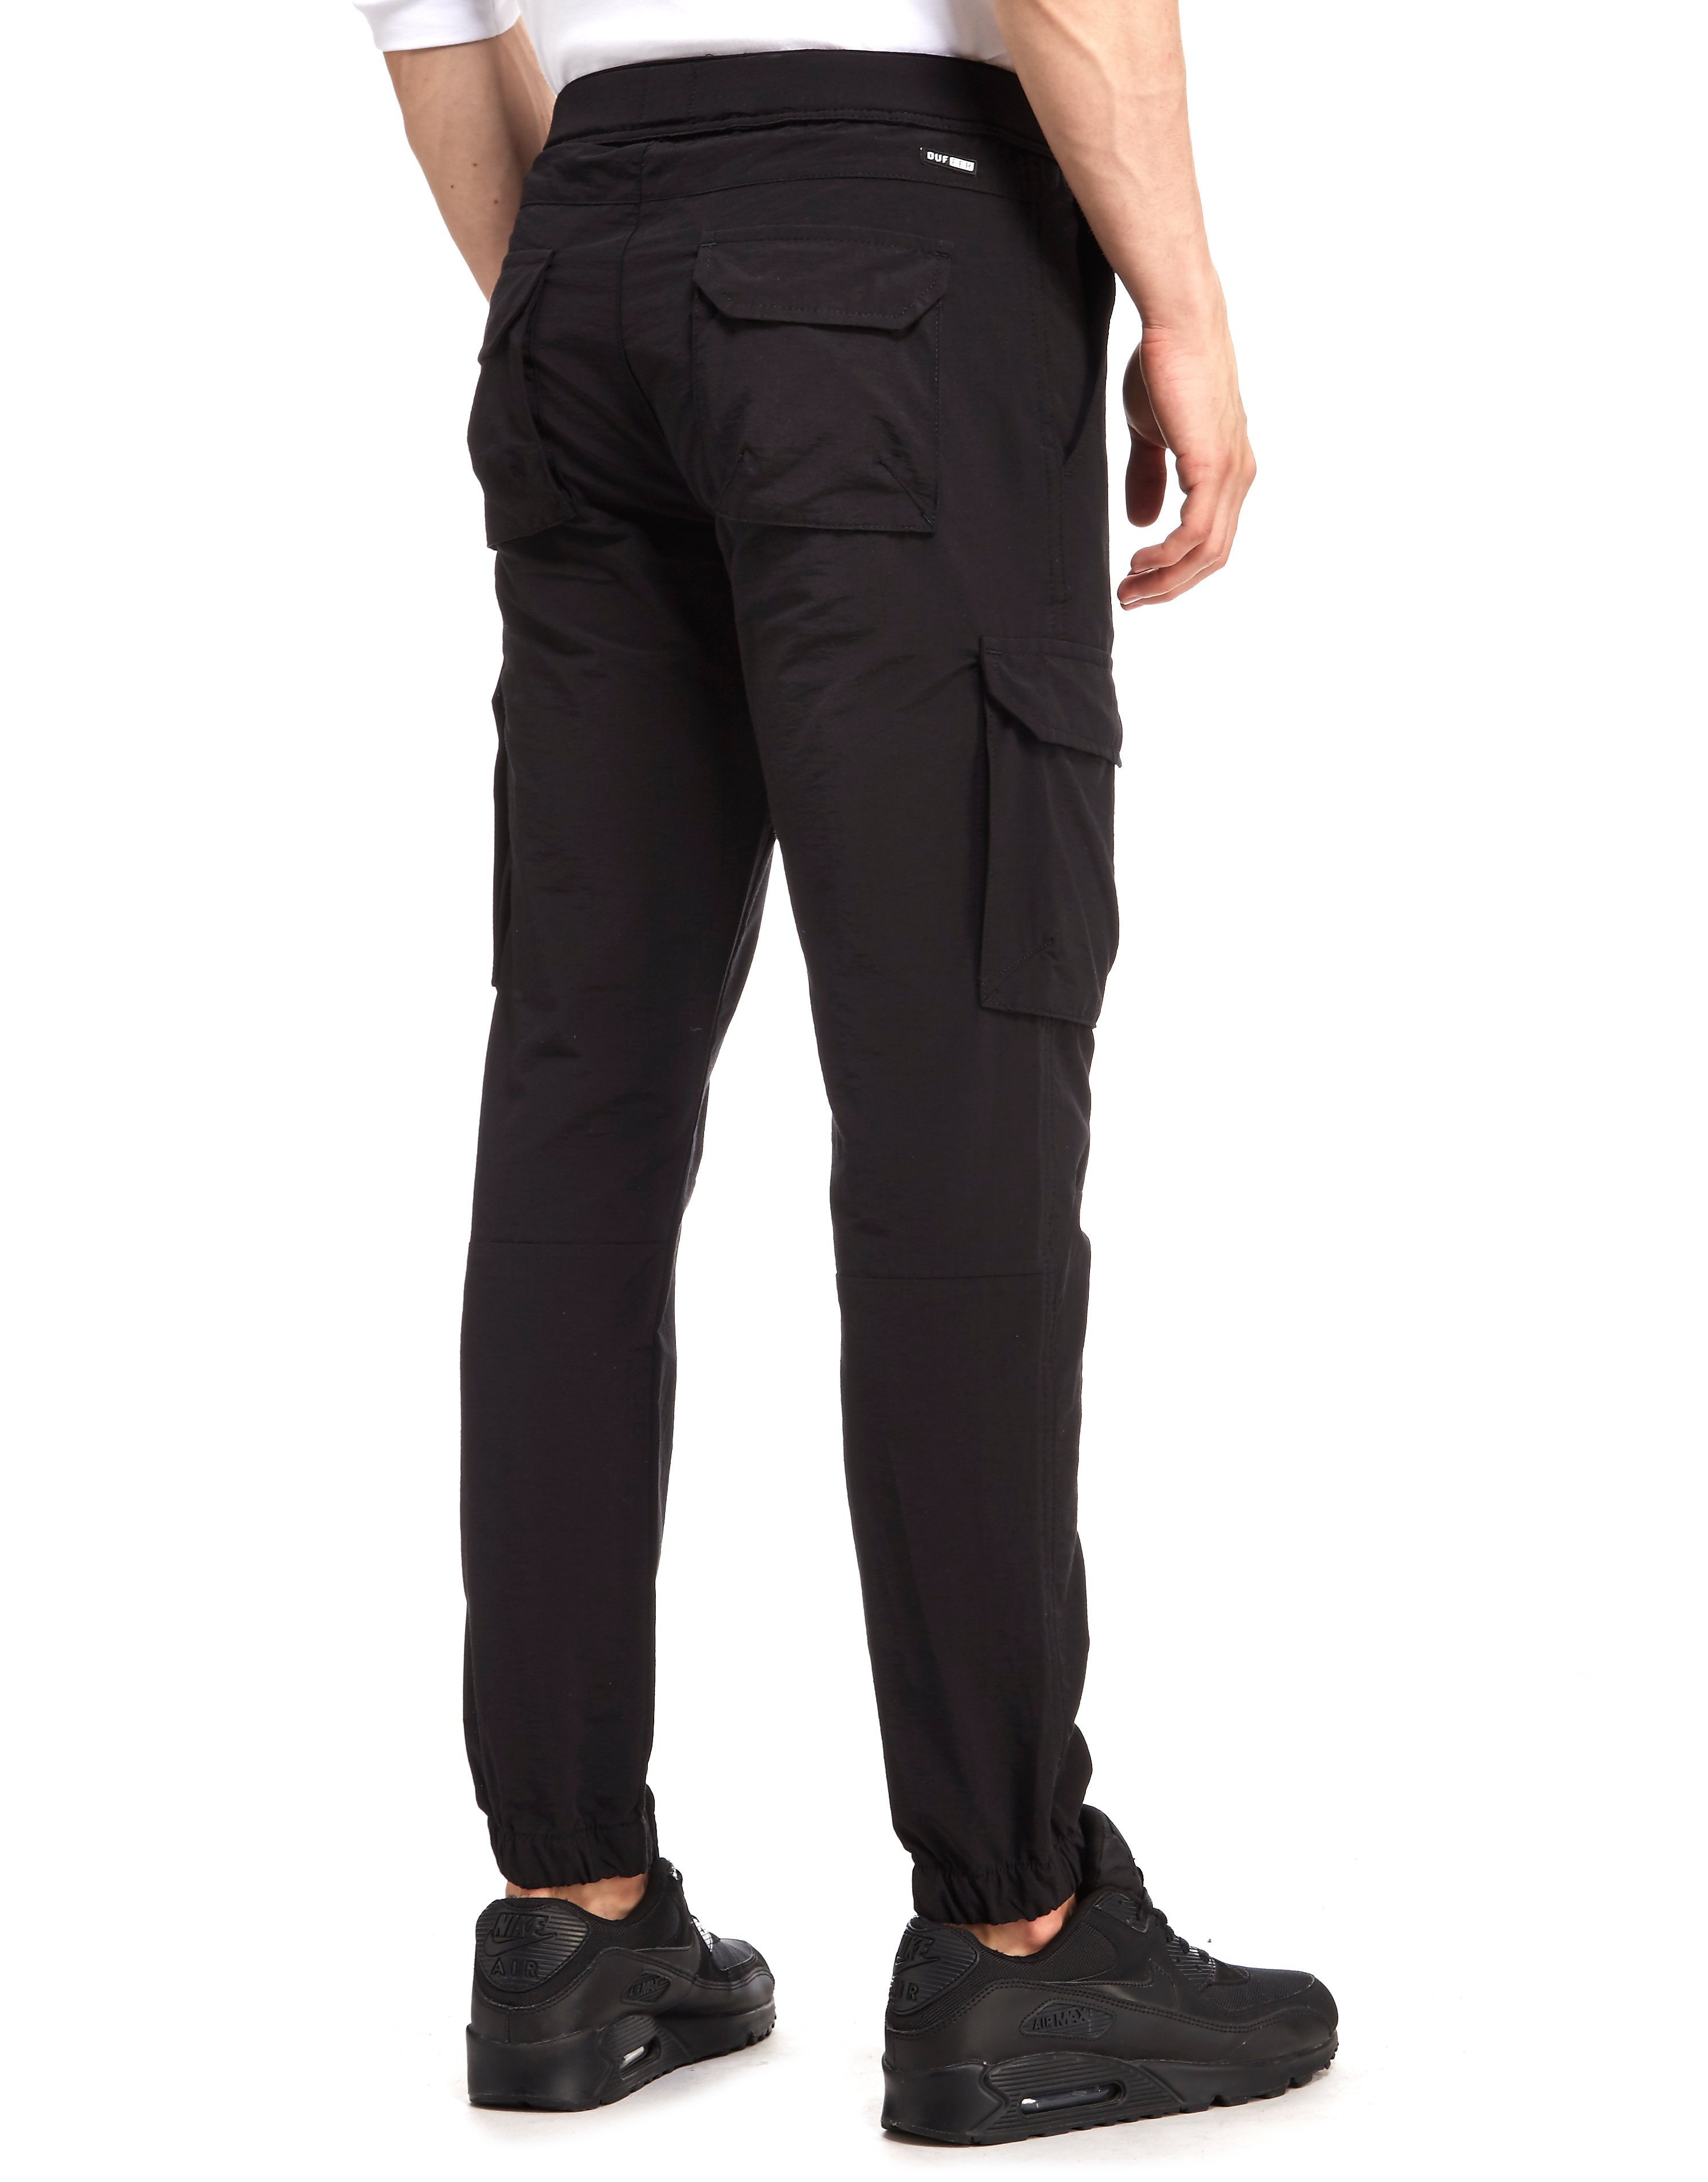 Duffer of St George Monde Woven Pants